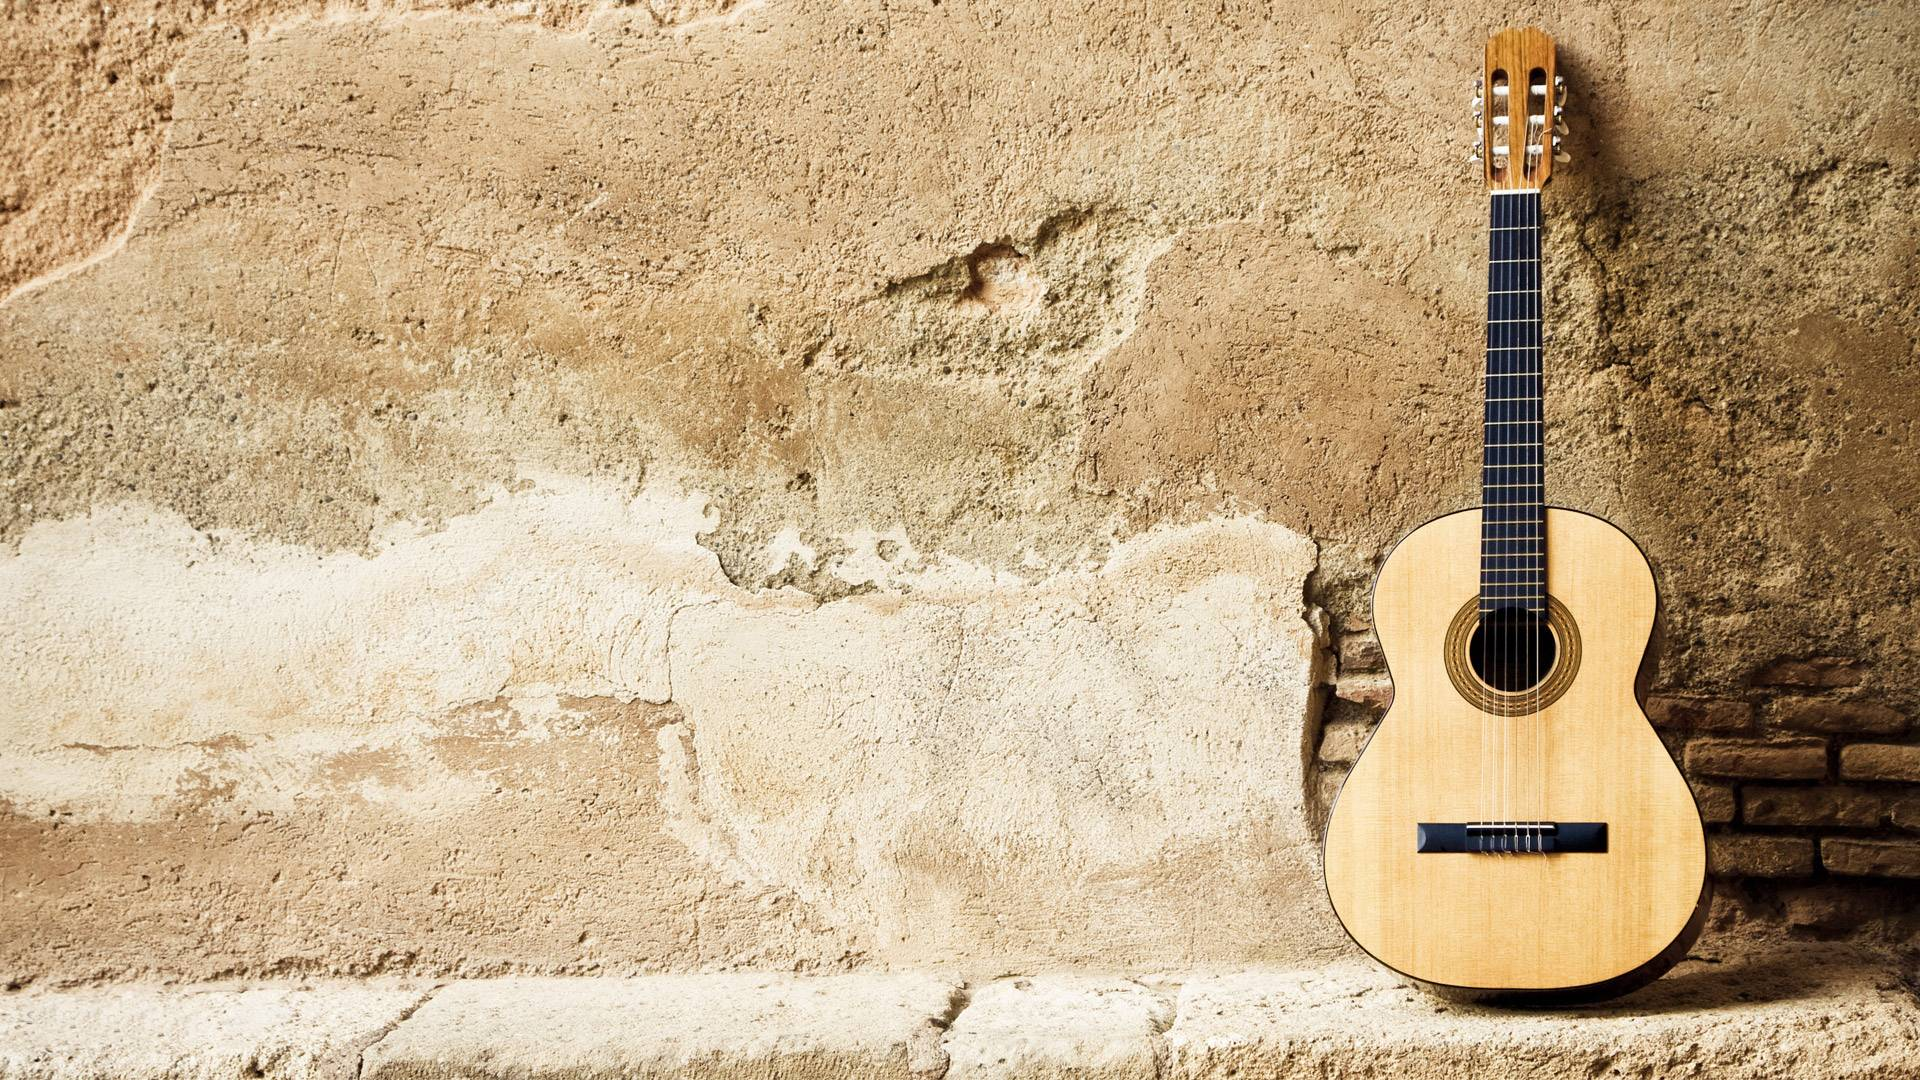 FunMozar – The Guitar – The Instrument of Modern Times